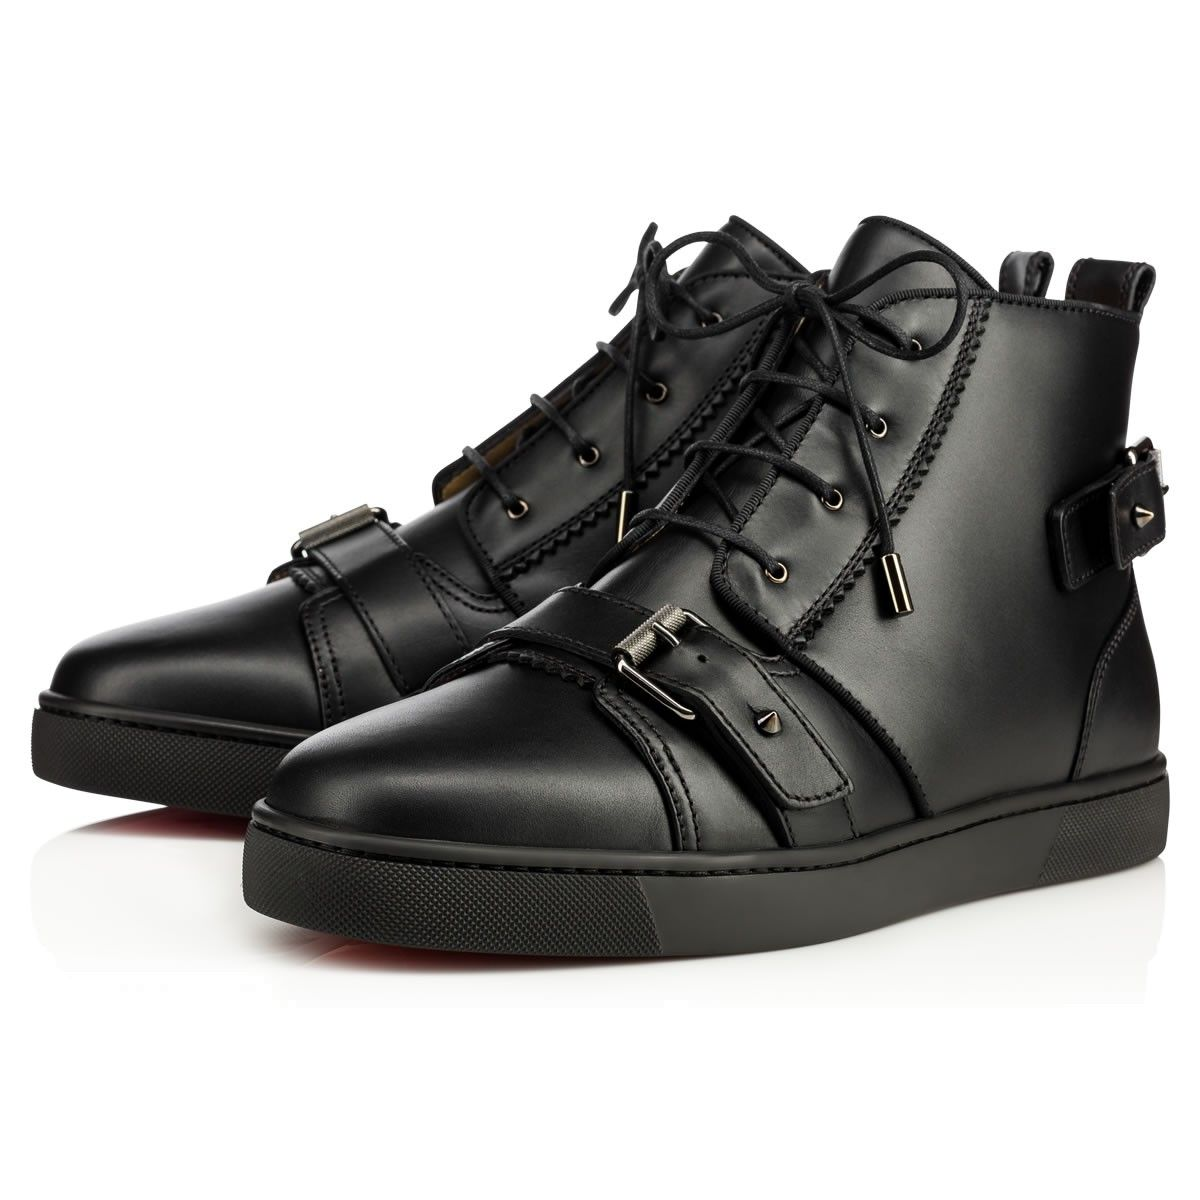 093af33a0b1 CHRISTIAN LOUBOUTIN Nono Strap Flat Black Leather - Men Shoes - Christian  Louboutin.  christianlouboutin  shoes